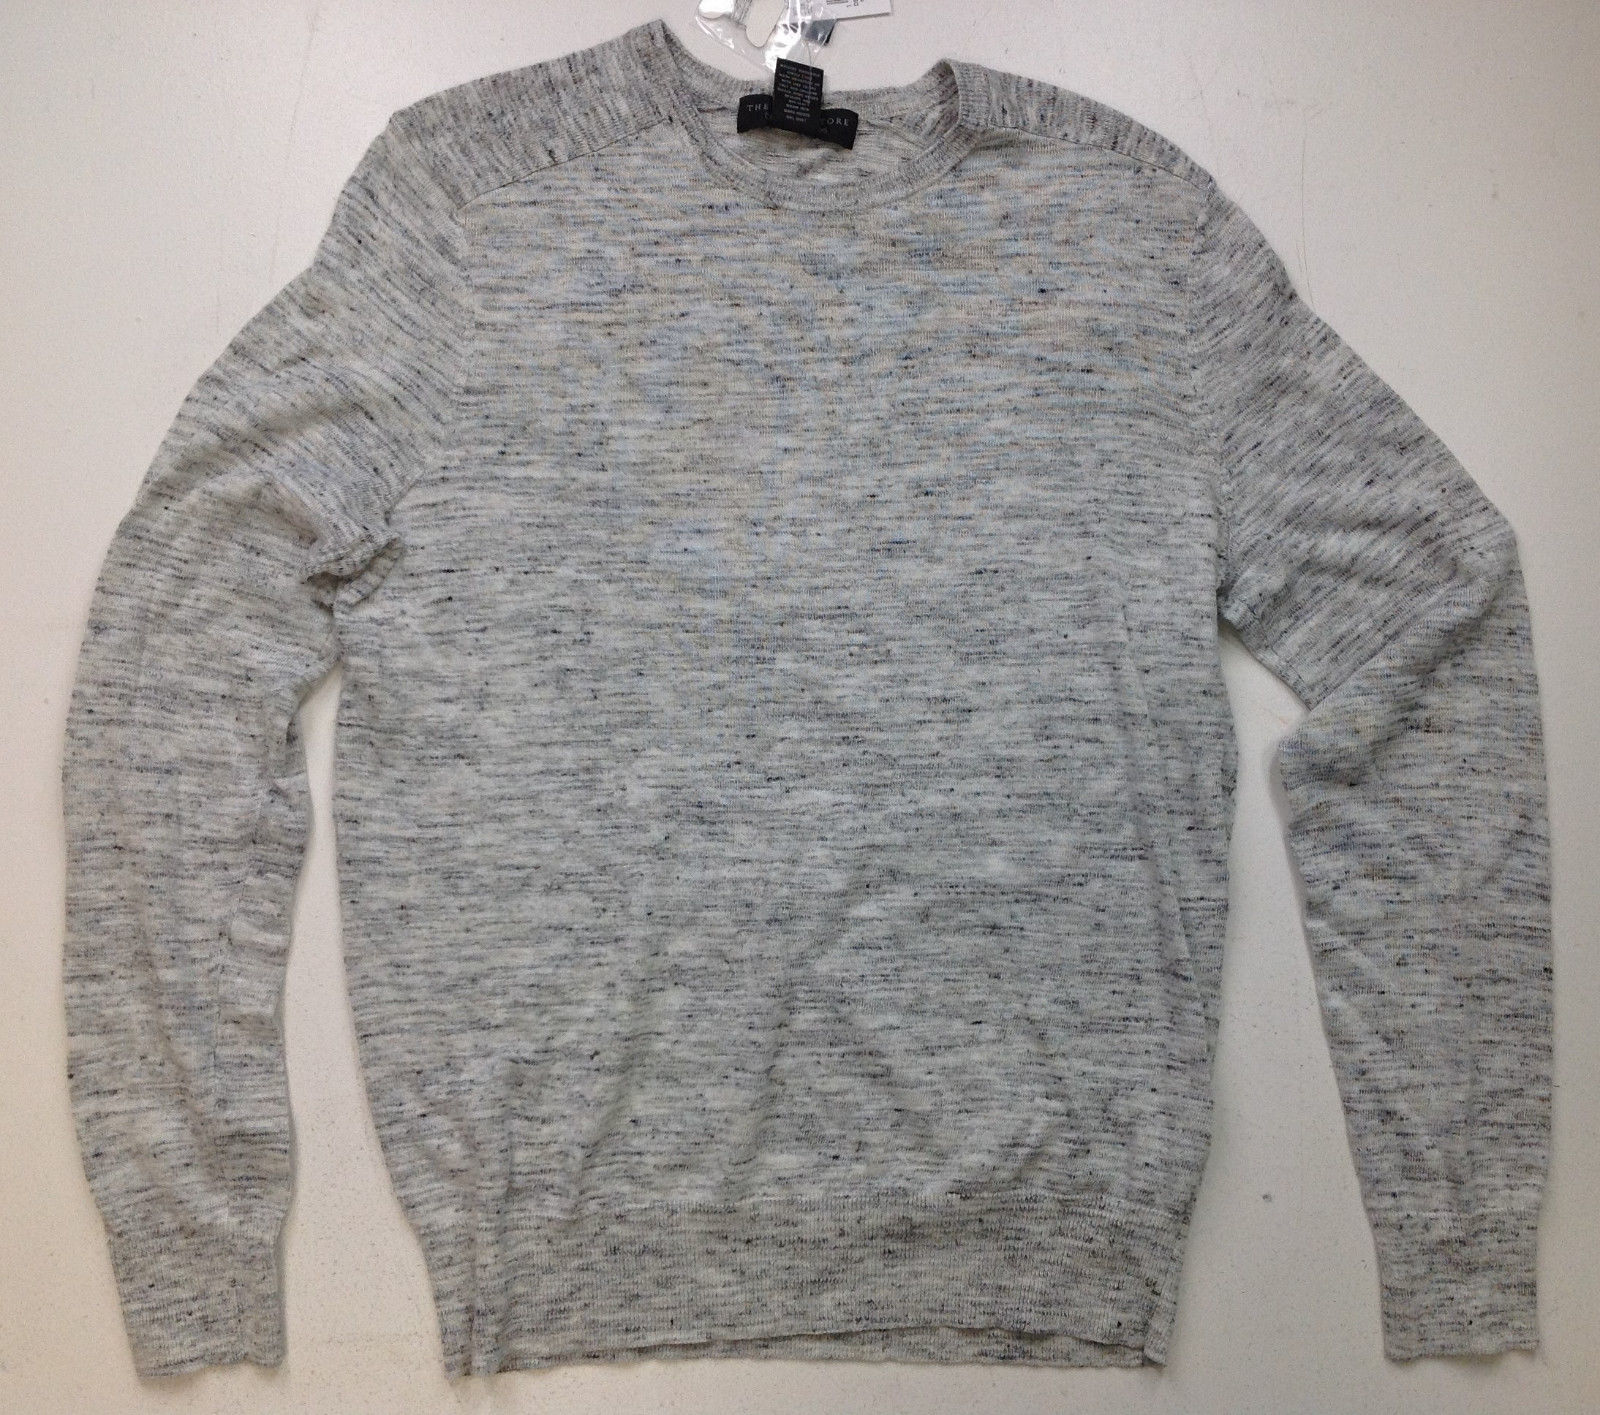 The Men's Store at Bloomingdale's Cotton Linen Space Dyed Sweater, Size XL, $98